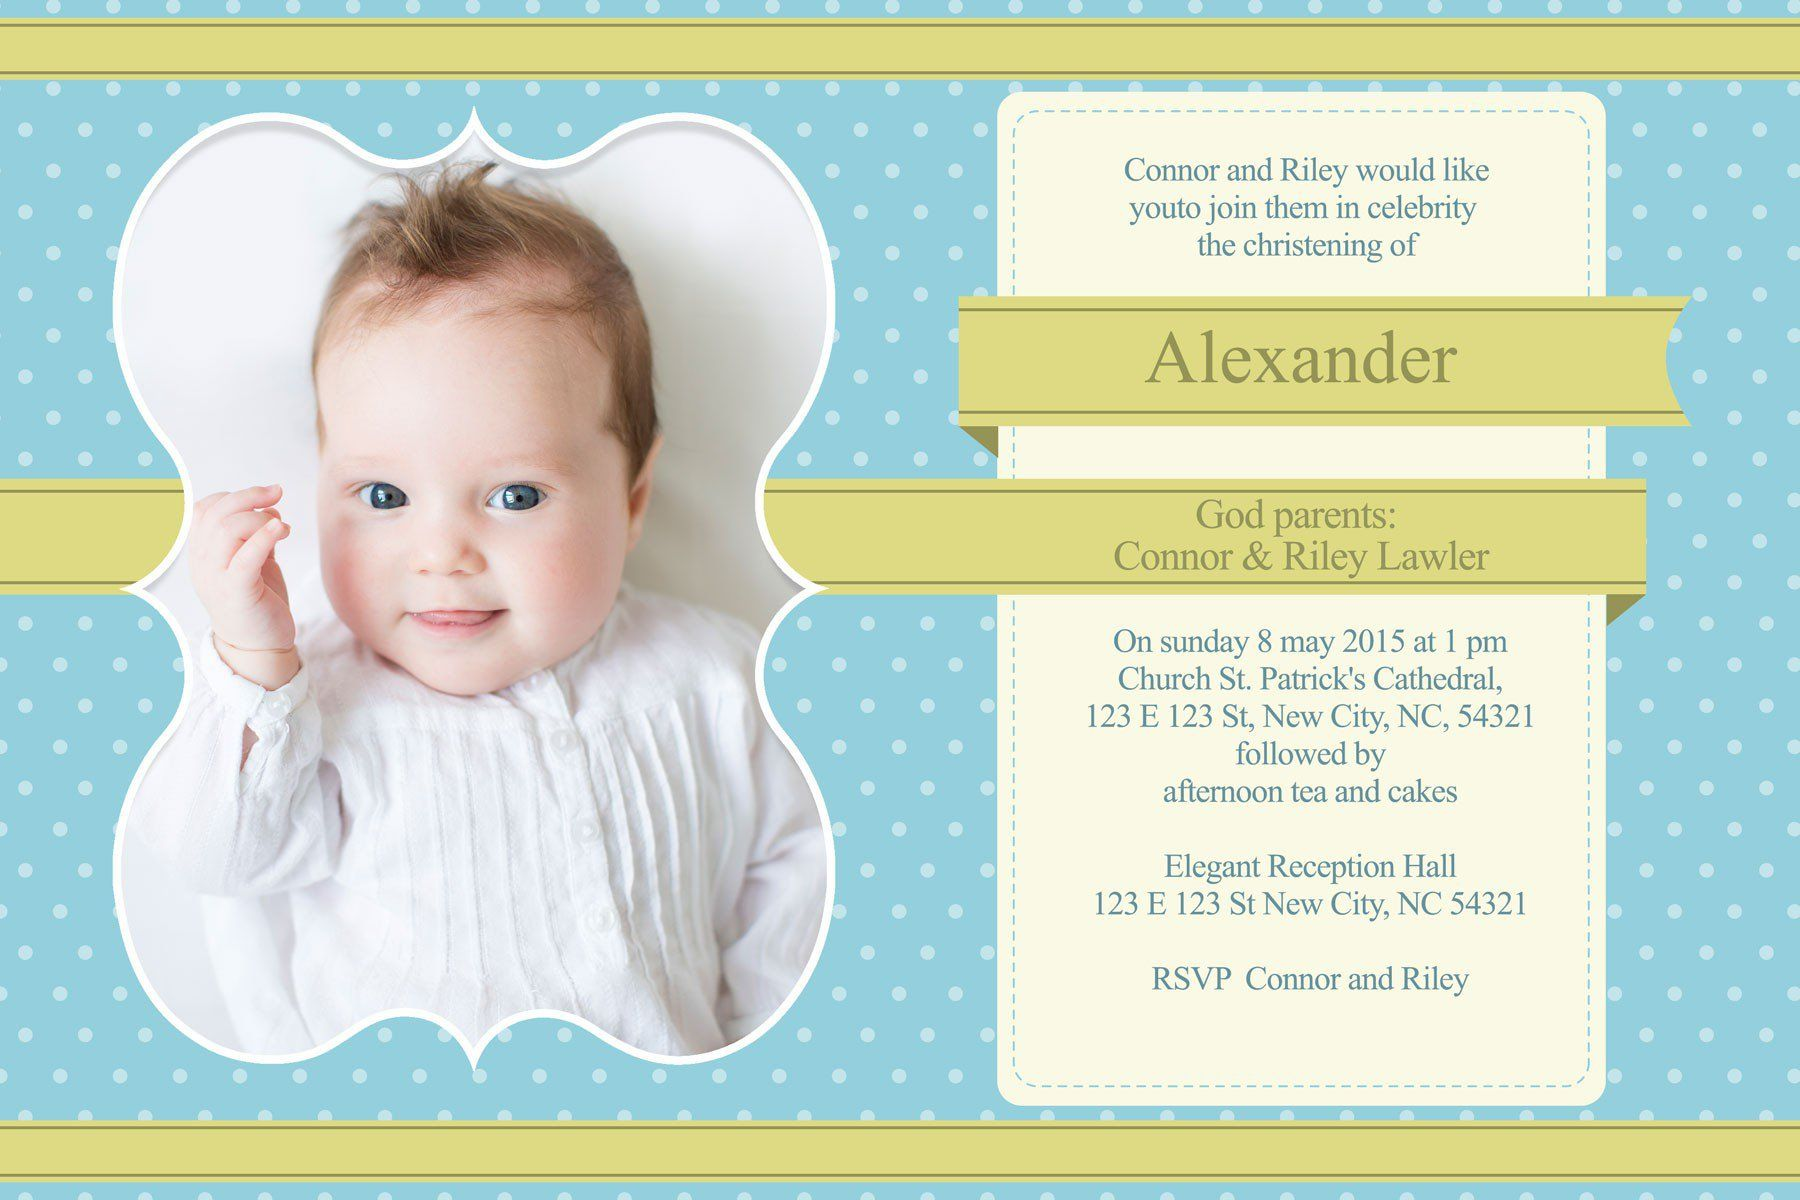 baptism-invitation-card-for-baby-girl | baptism invitations ...